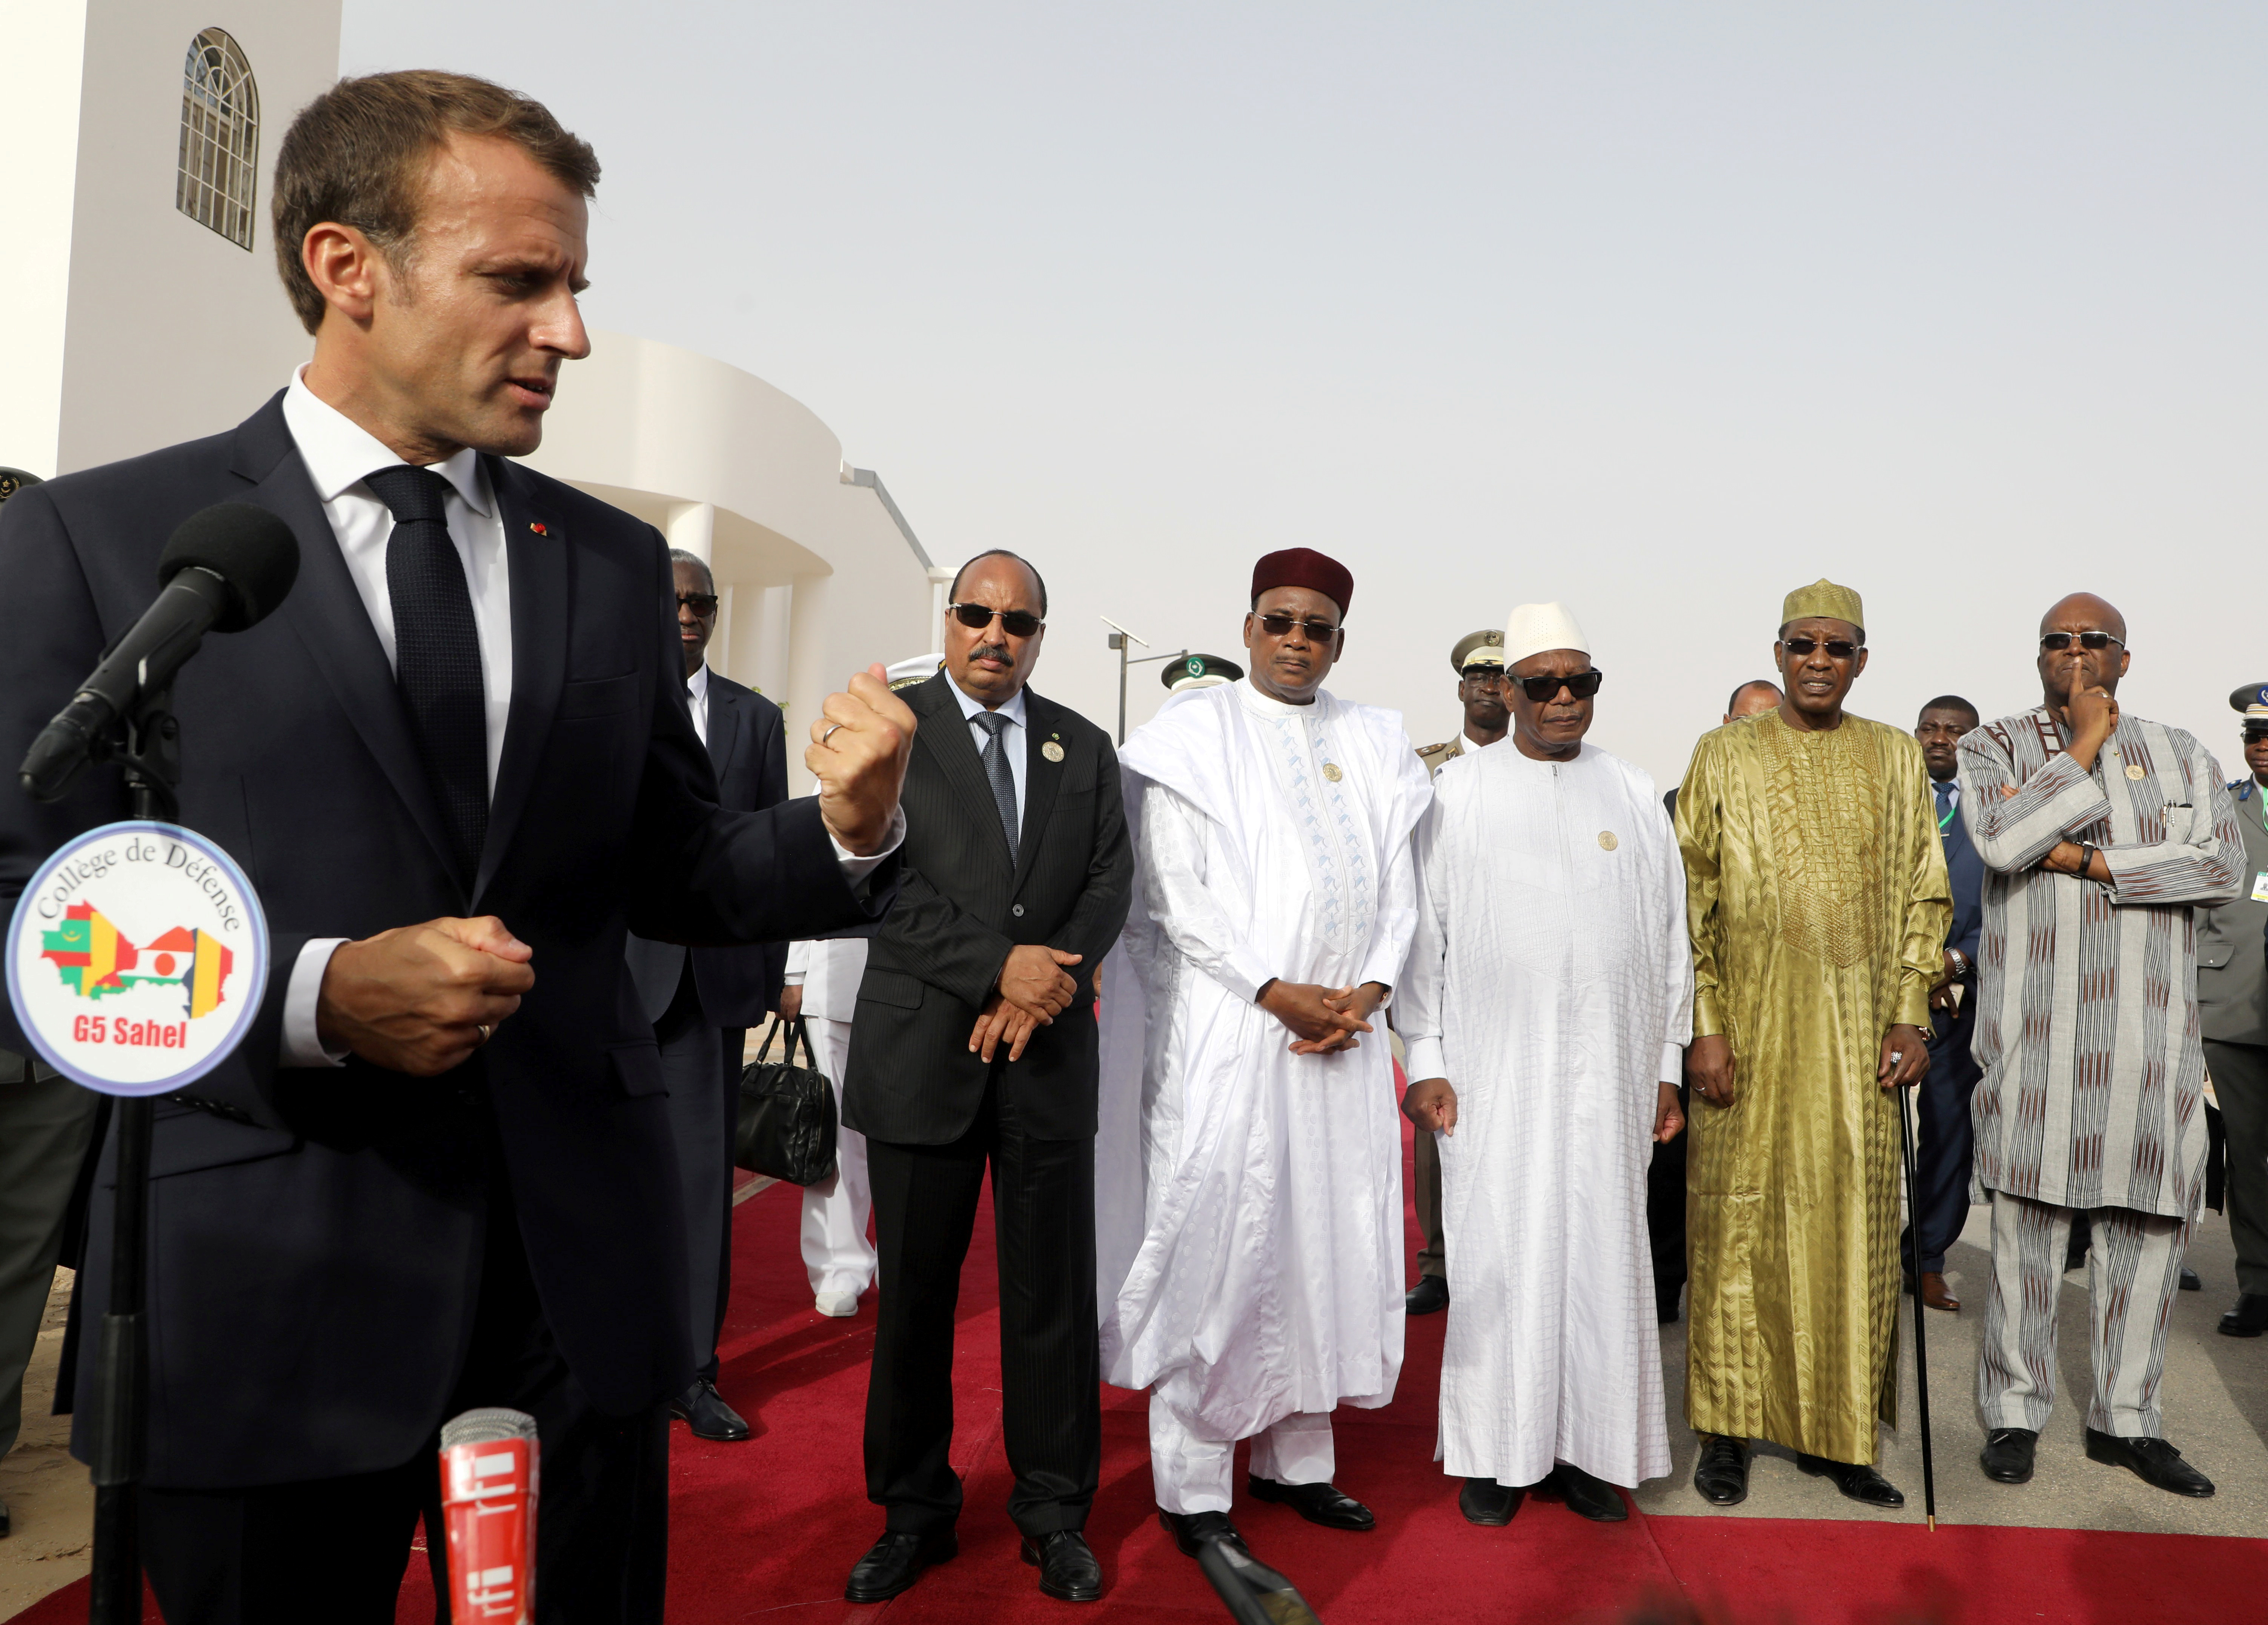 French President Emmanuel Macron delivers a speech during a press conference ahead of a G5 Sahel force meeting in Nouakchott, Mauritania, July 2, 2018.